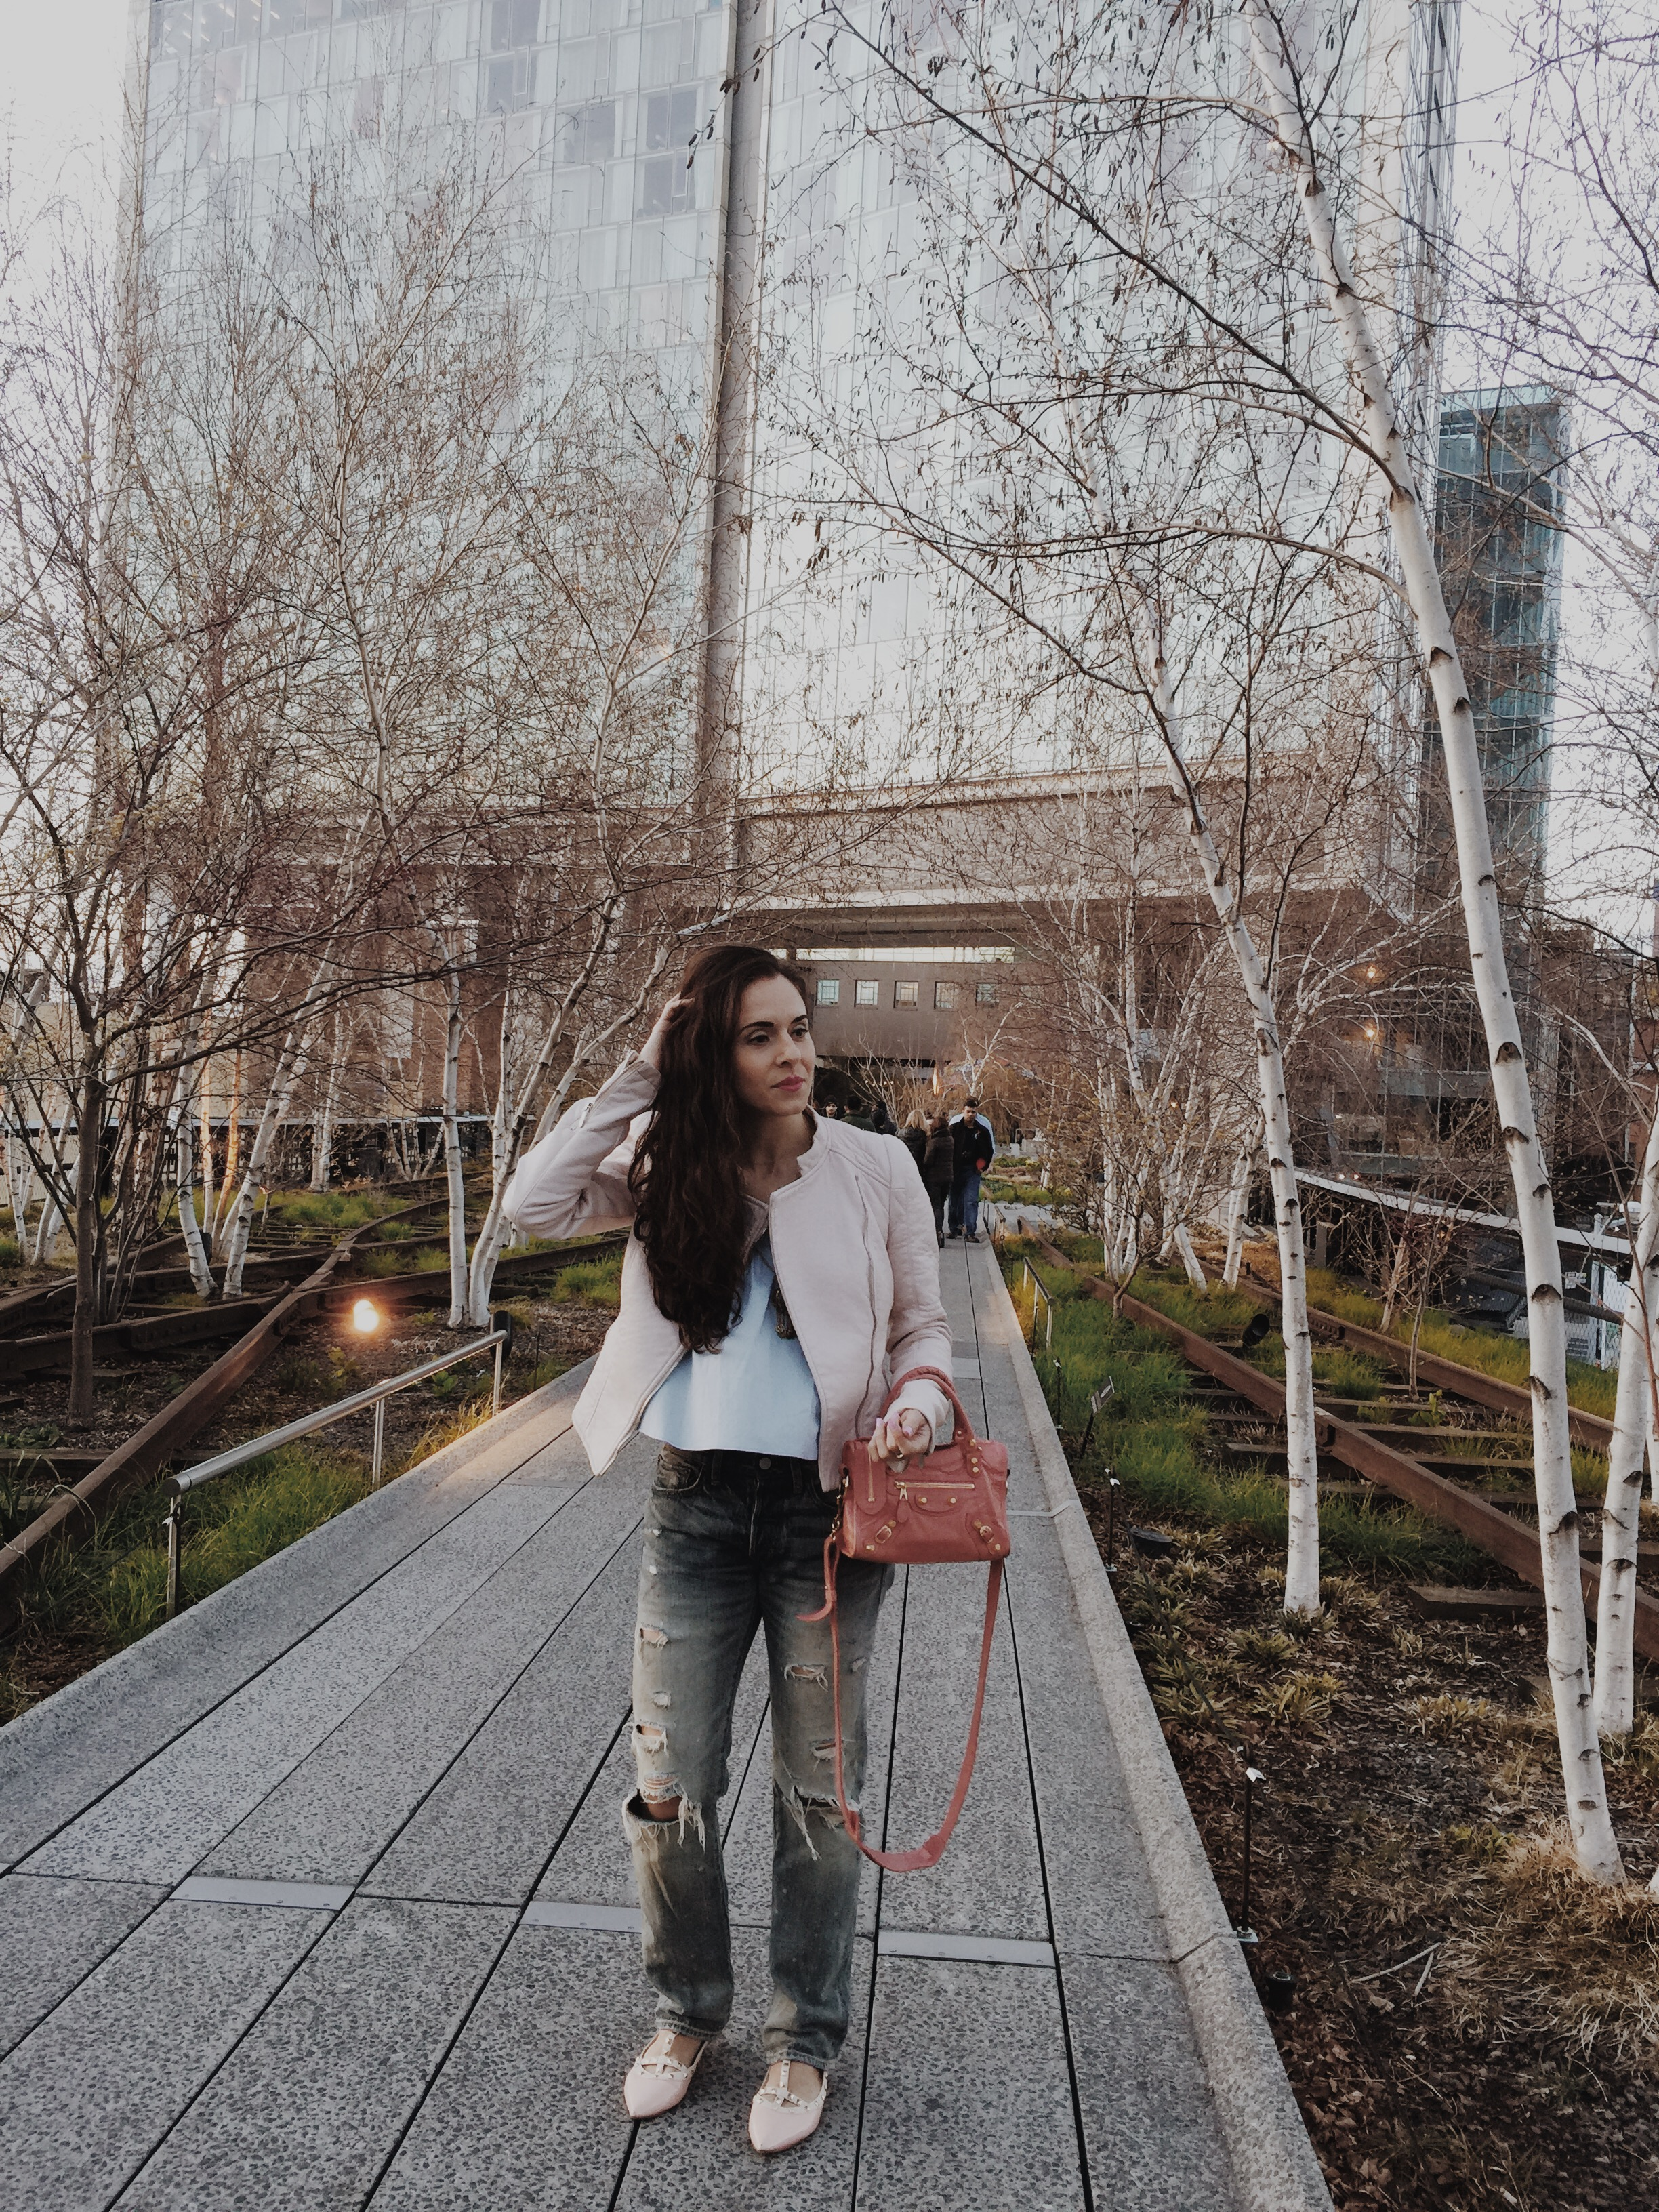 Strolling the High Line in the Meat Packing district in my  Zara  off the shoulder blue top and pink moto jacket,  Ralph Lauren Denim & Supply  ripped boyfriend jeans,  Valentino  rock stud flats, and  Balenciaga  Mini City bag. Photography by  Francisco Graciano .